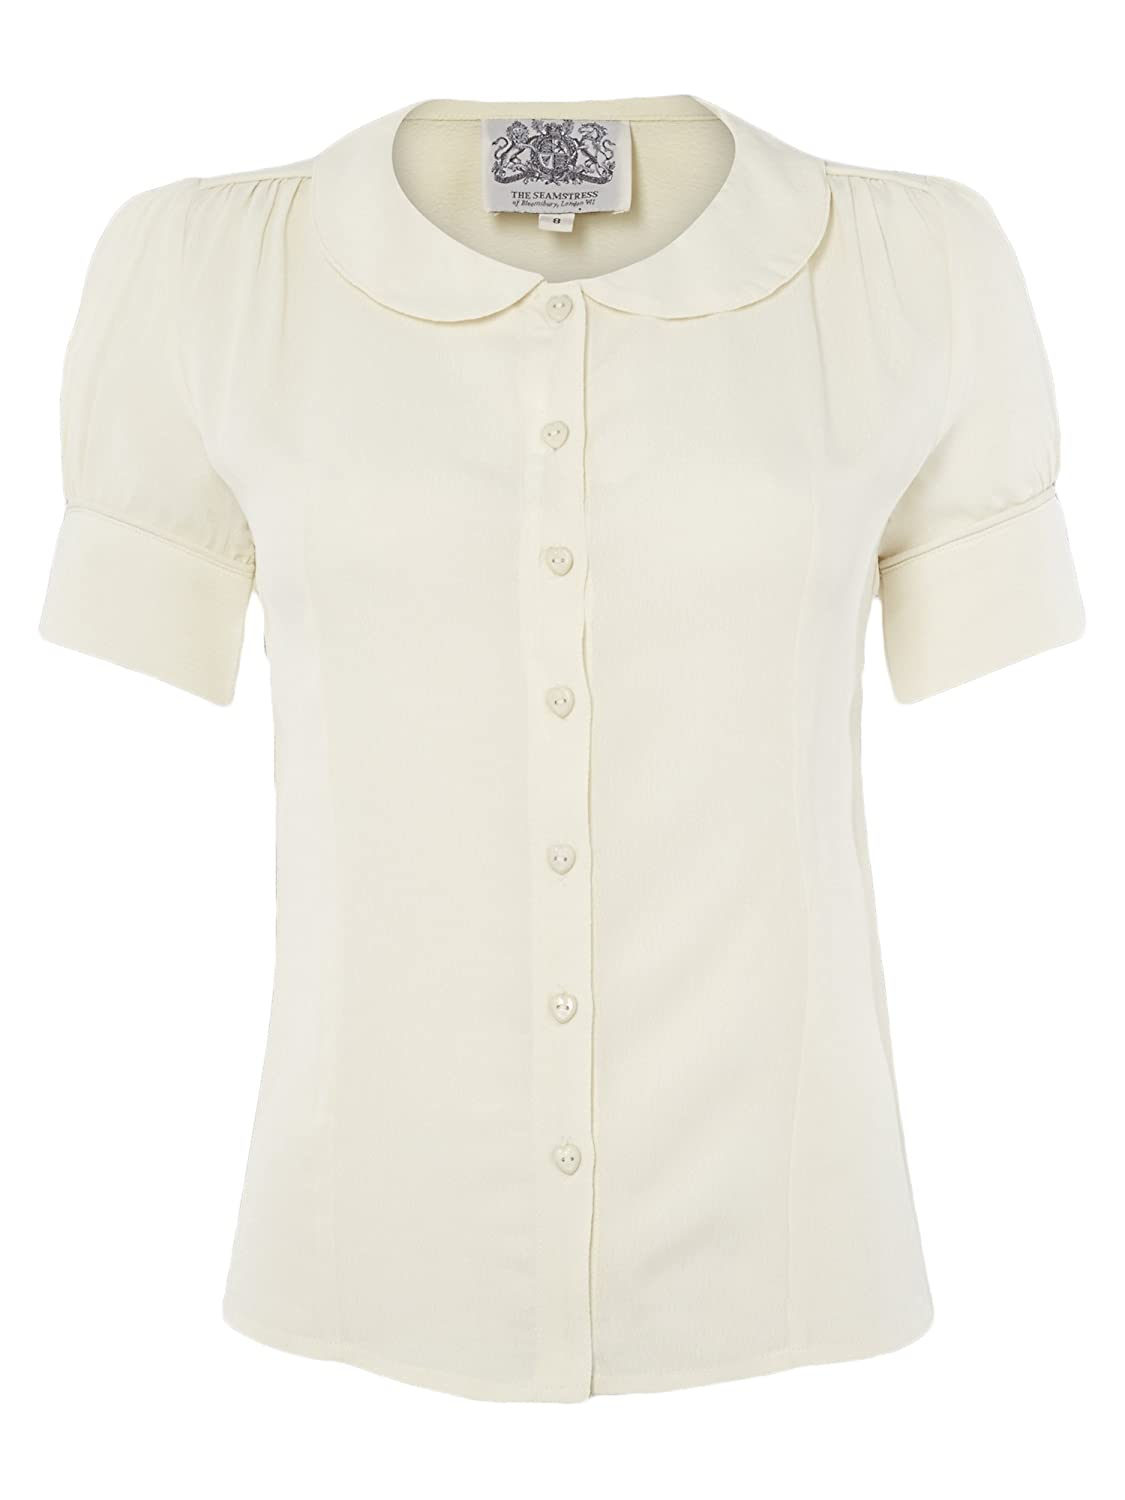 Agent Peggy Carter Costume, Dress, Hats 1940s Authentic Vintage Inspired Jive Blouse in Cream £39.00 AT vintagedancer.com